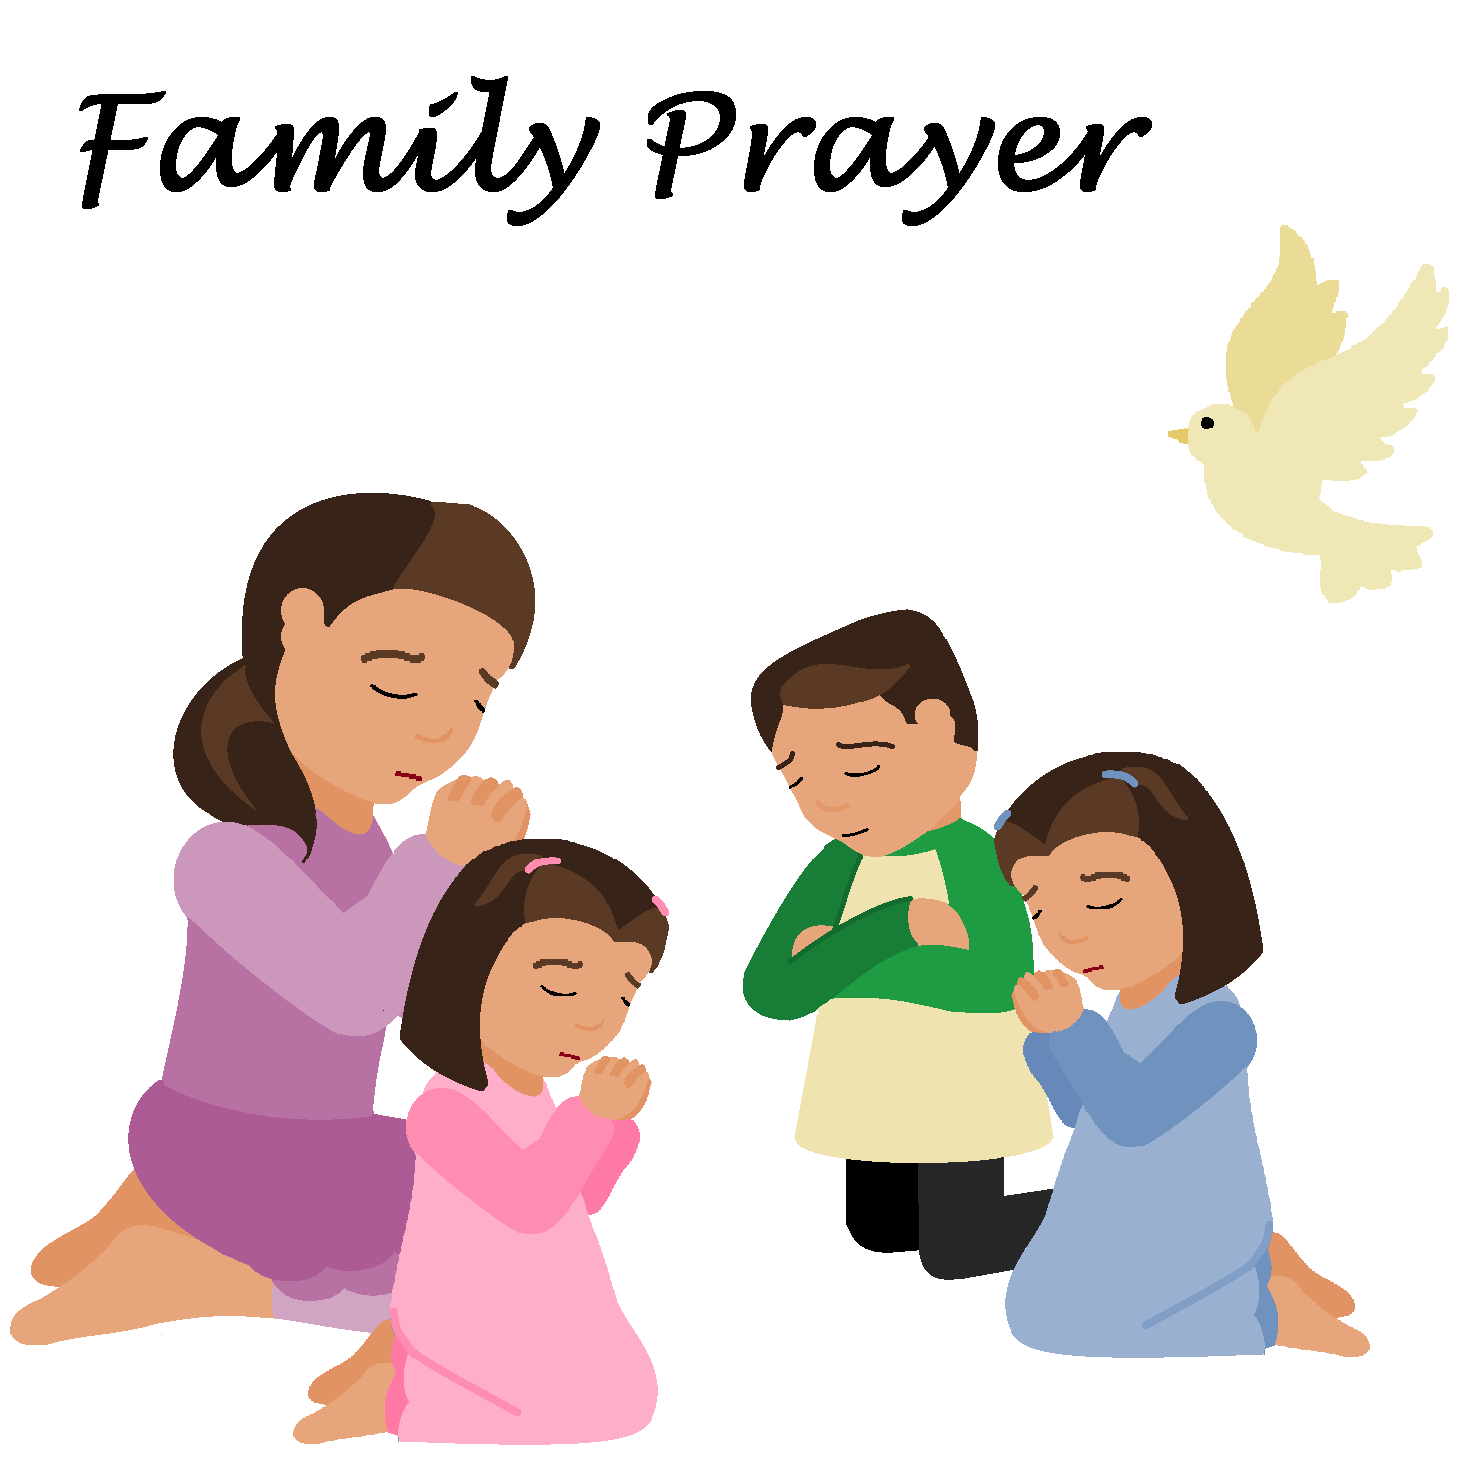 Family Prayer Clipart - Clipart Kid